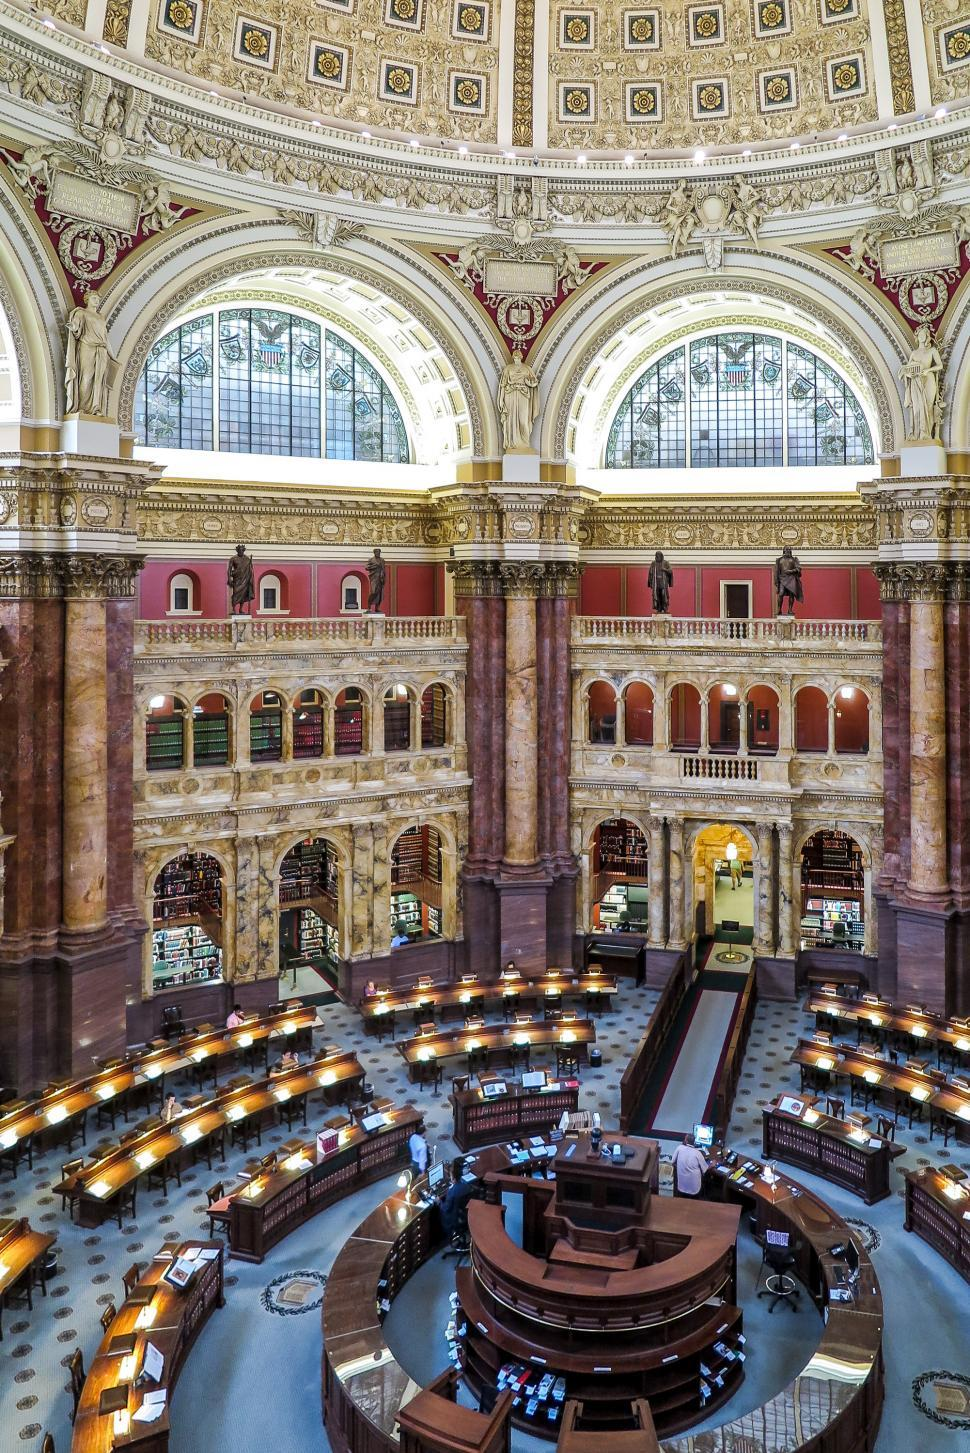 Download Free Stock HD Photo of Interior of Library of Congress Online